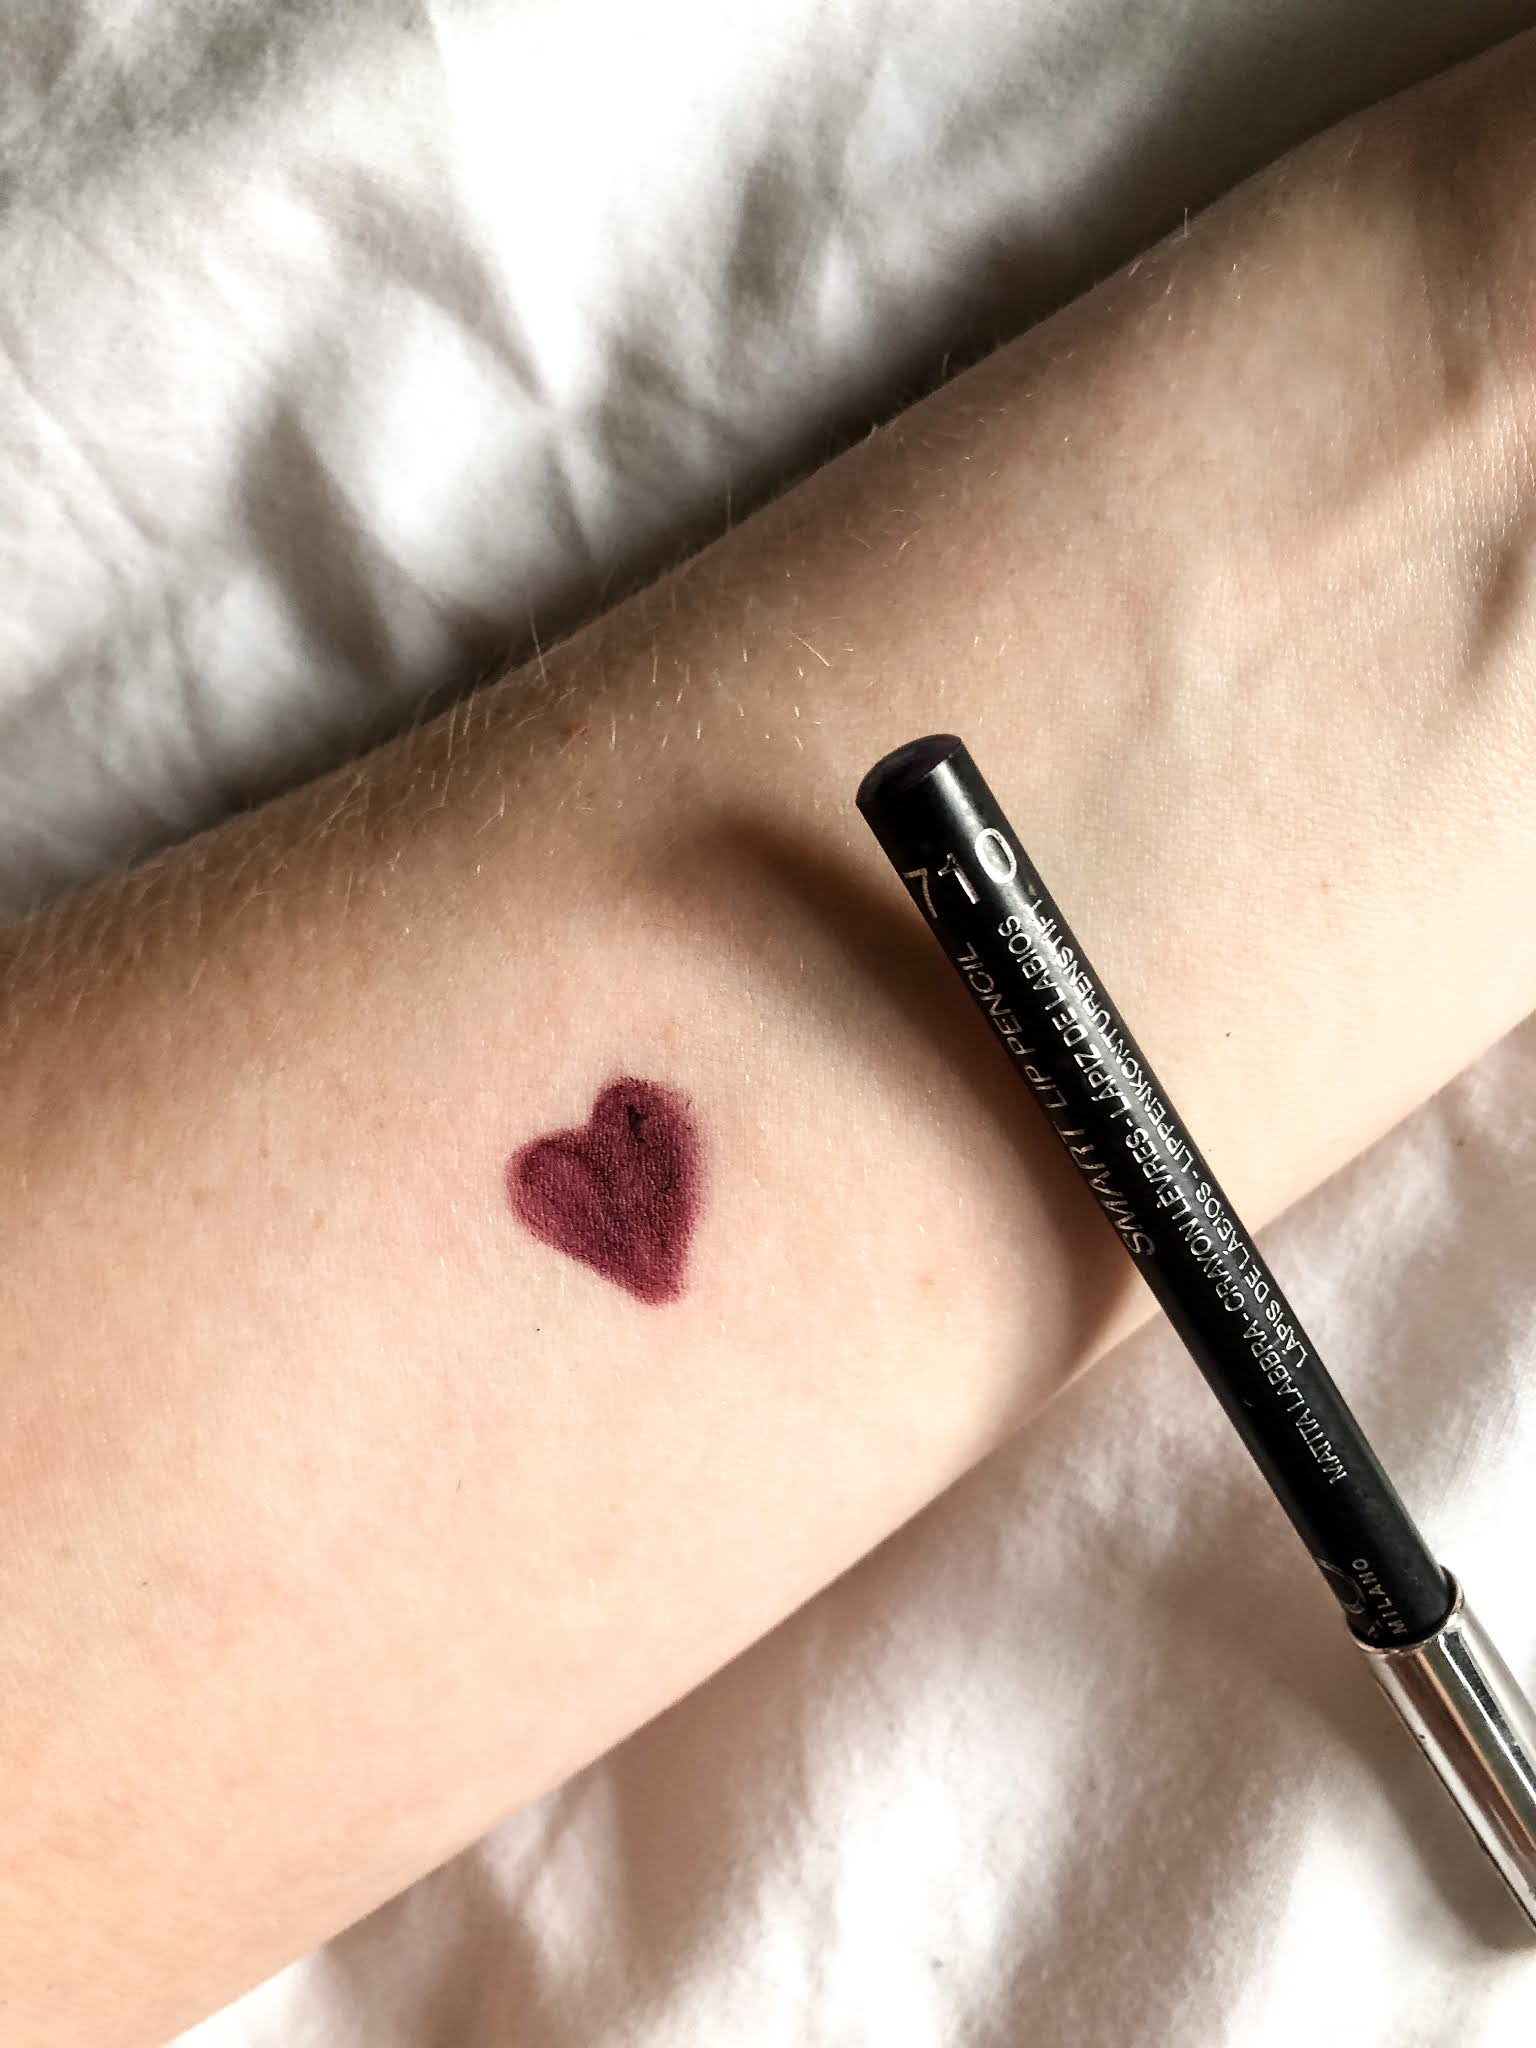 Kiko lip pencil review and swatches of deep violet.